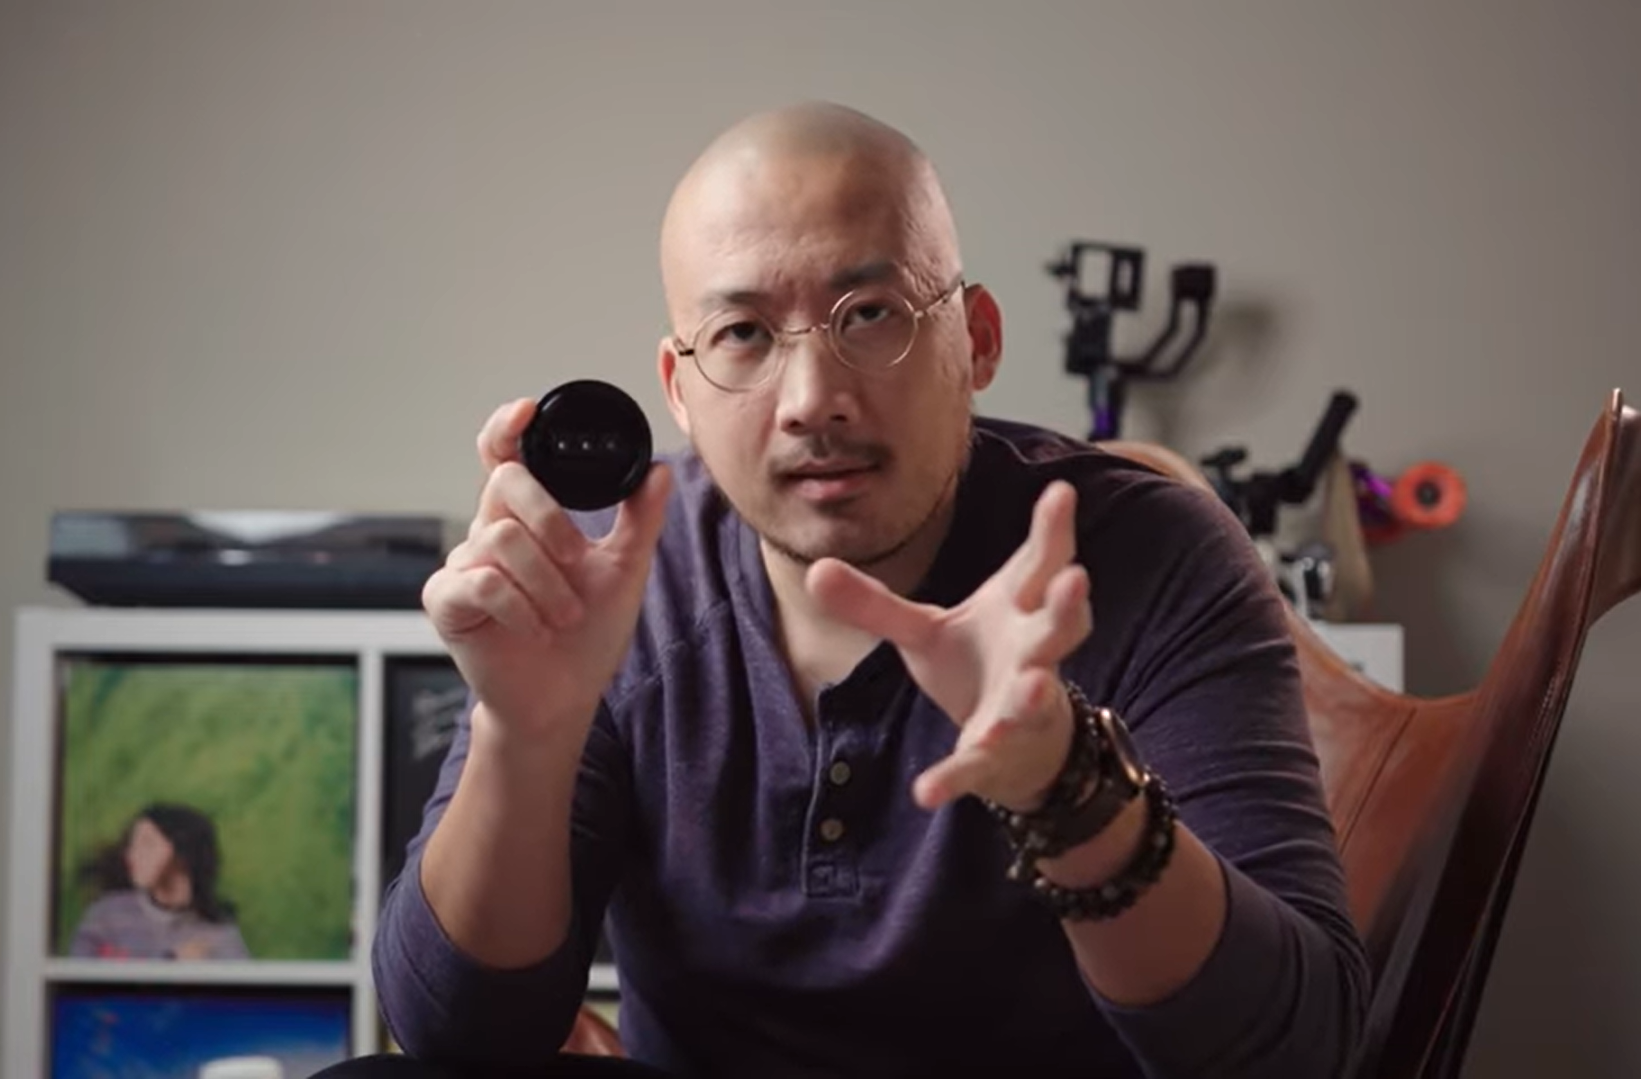 This 3D printed lens gives digital cameras the ability to take 3D photographs